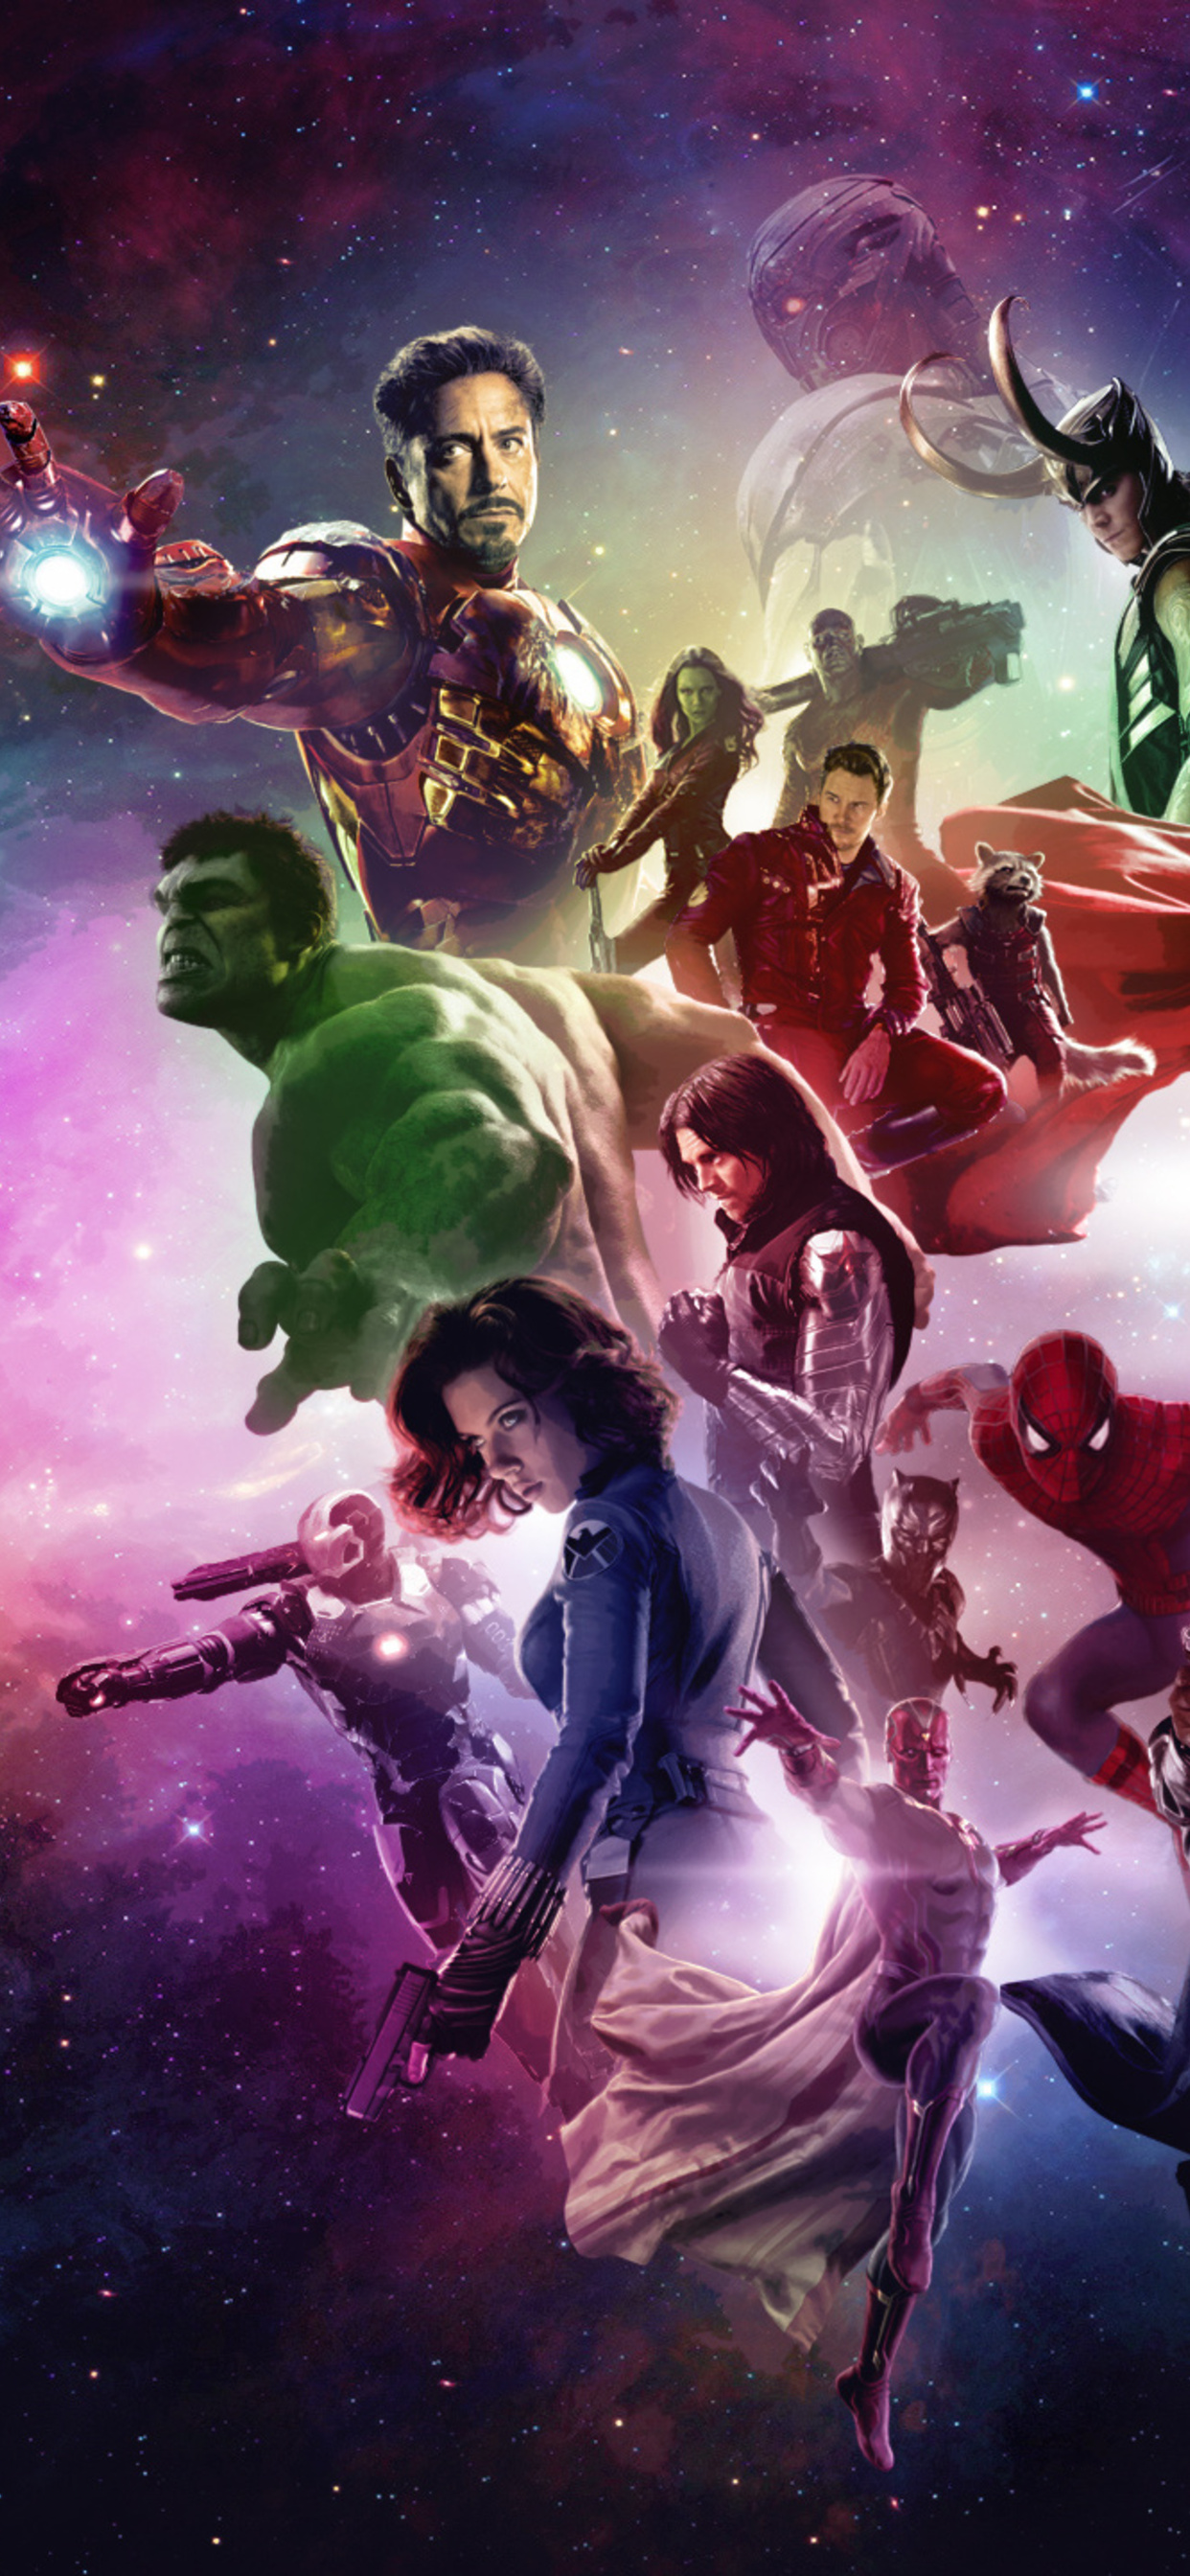 Marvel Wallpaper Iphone Xs Max The Galleries Of Hd Wallpaper